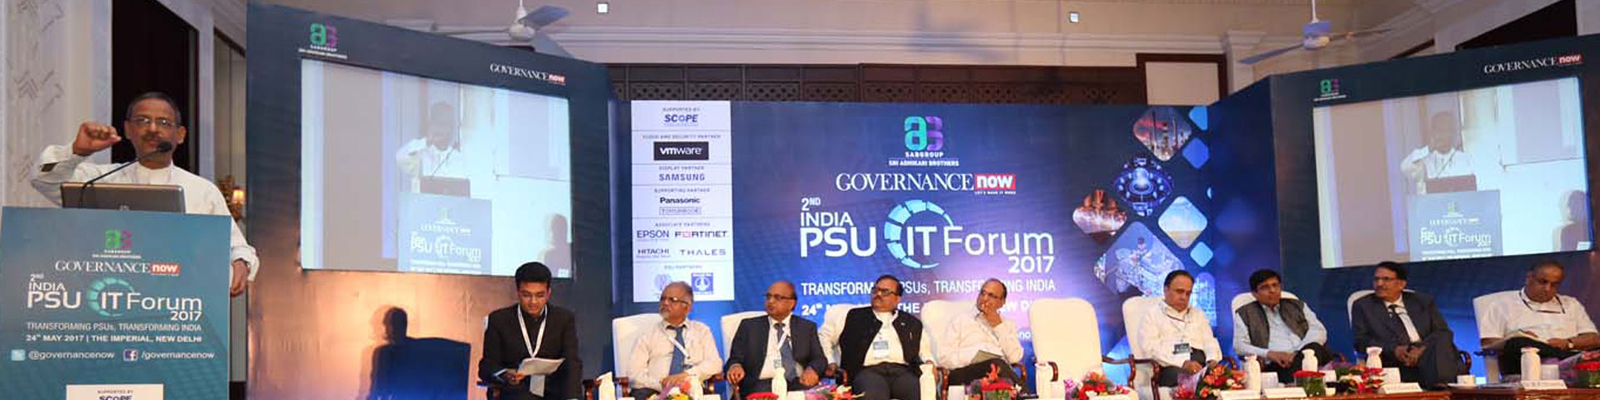 India PSU IT Forum 2019